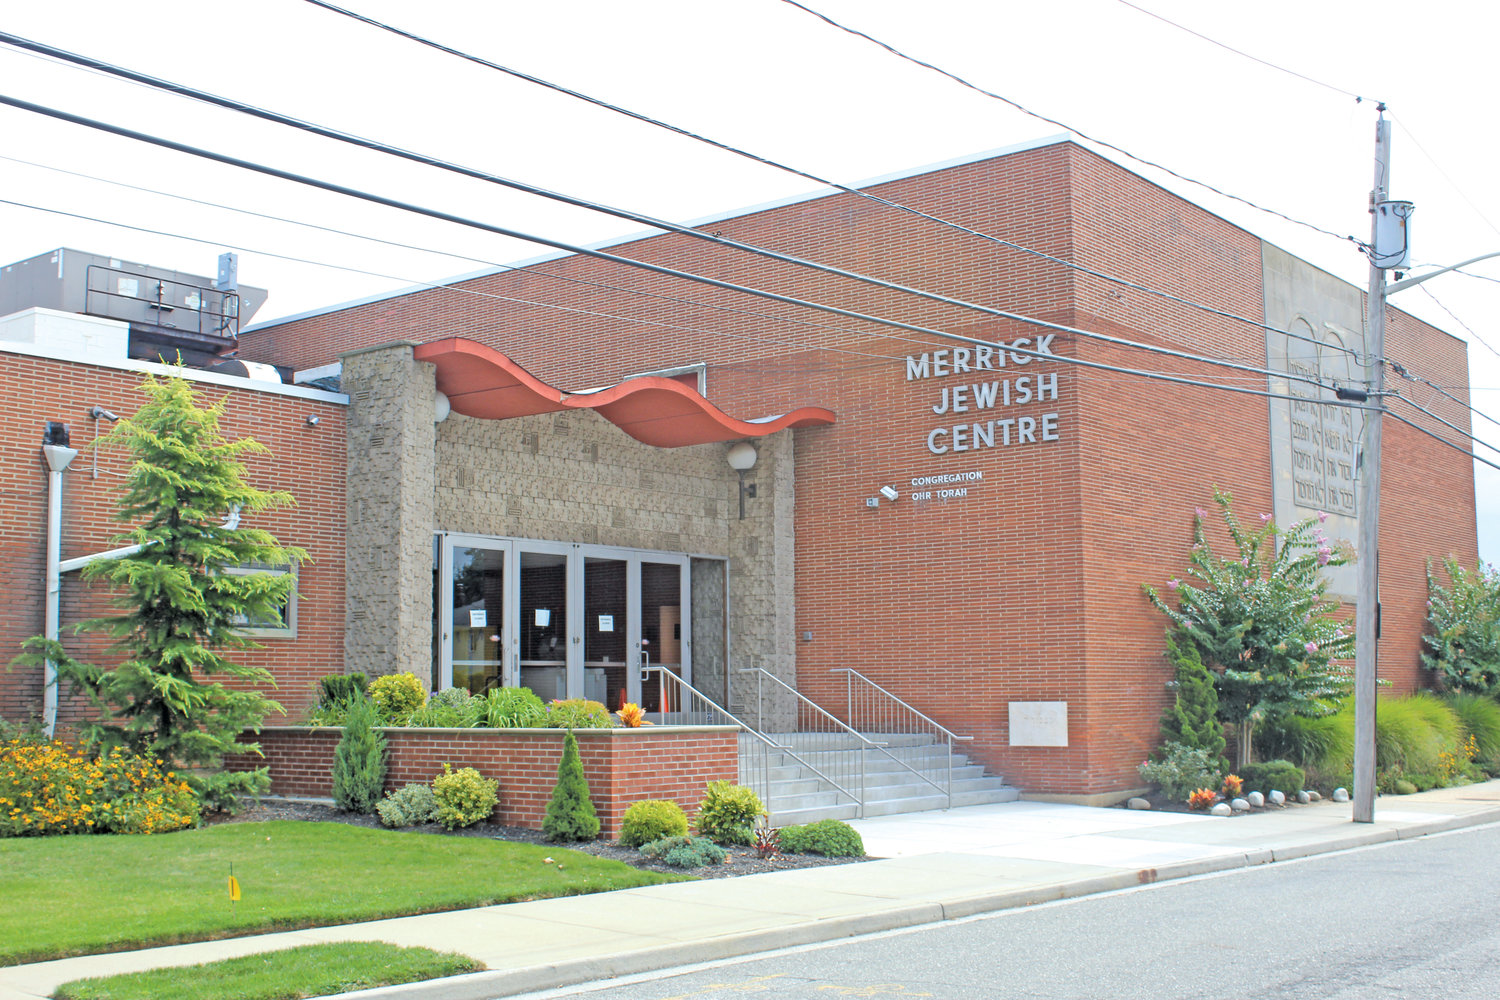 The Merrick Jewish Centre is beefing up its security, including the addition of armed guards and the installation of an intercom system at entrances.